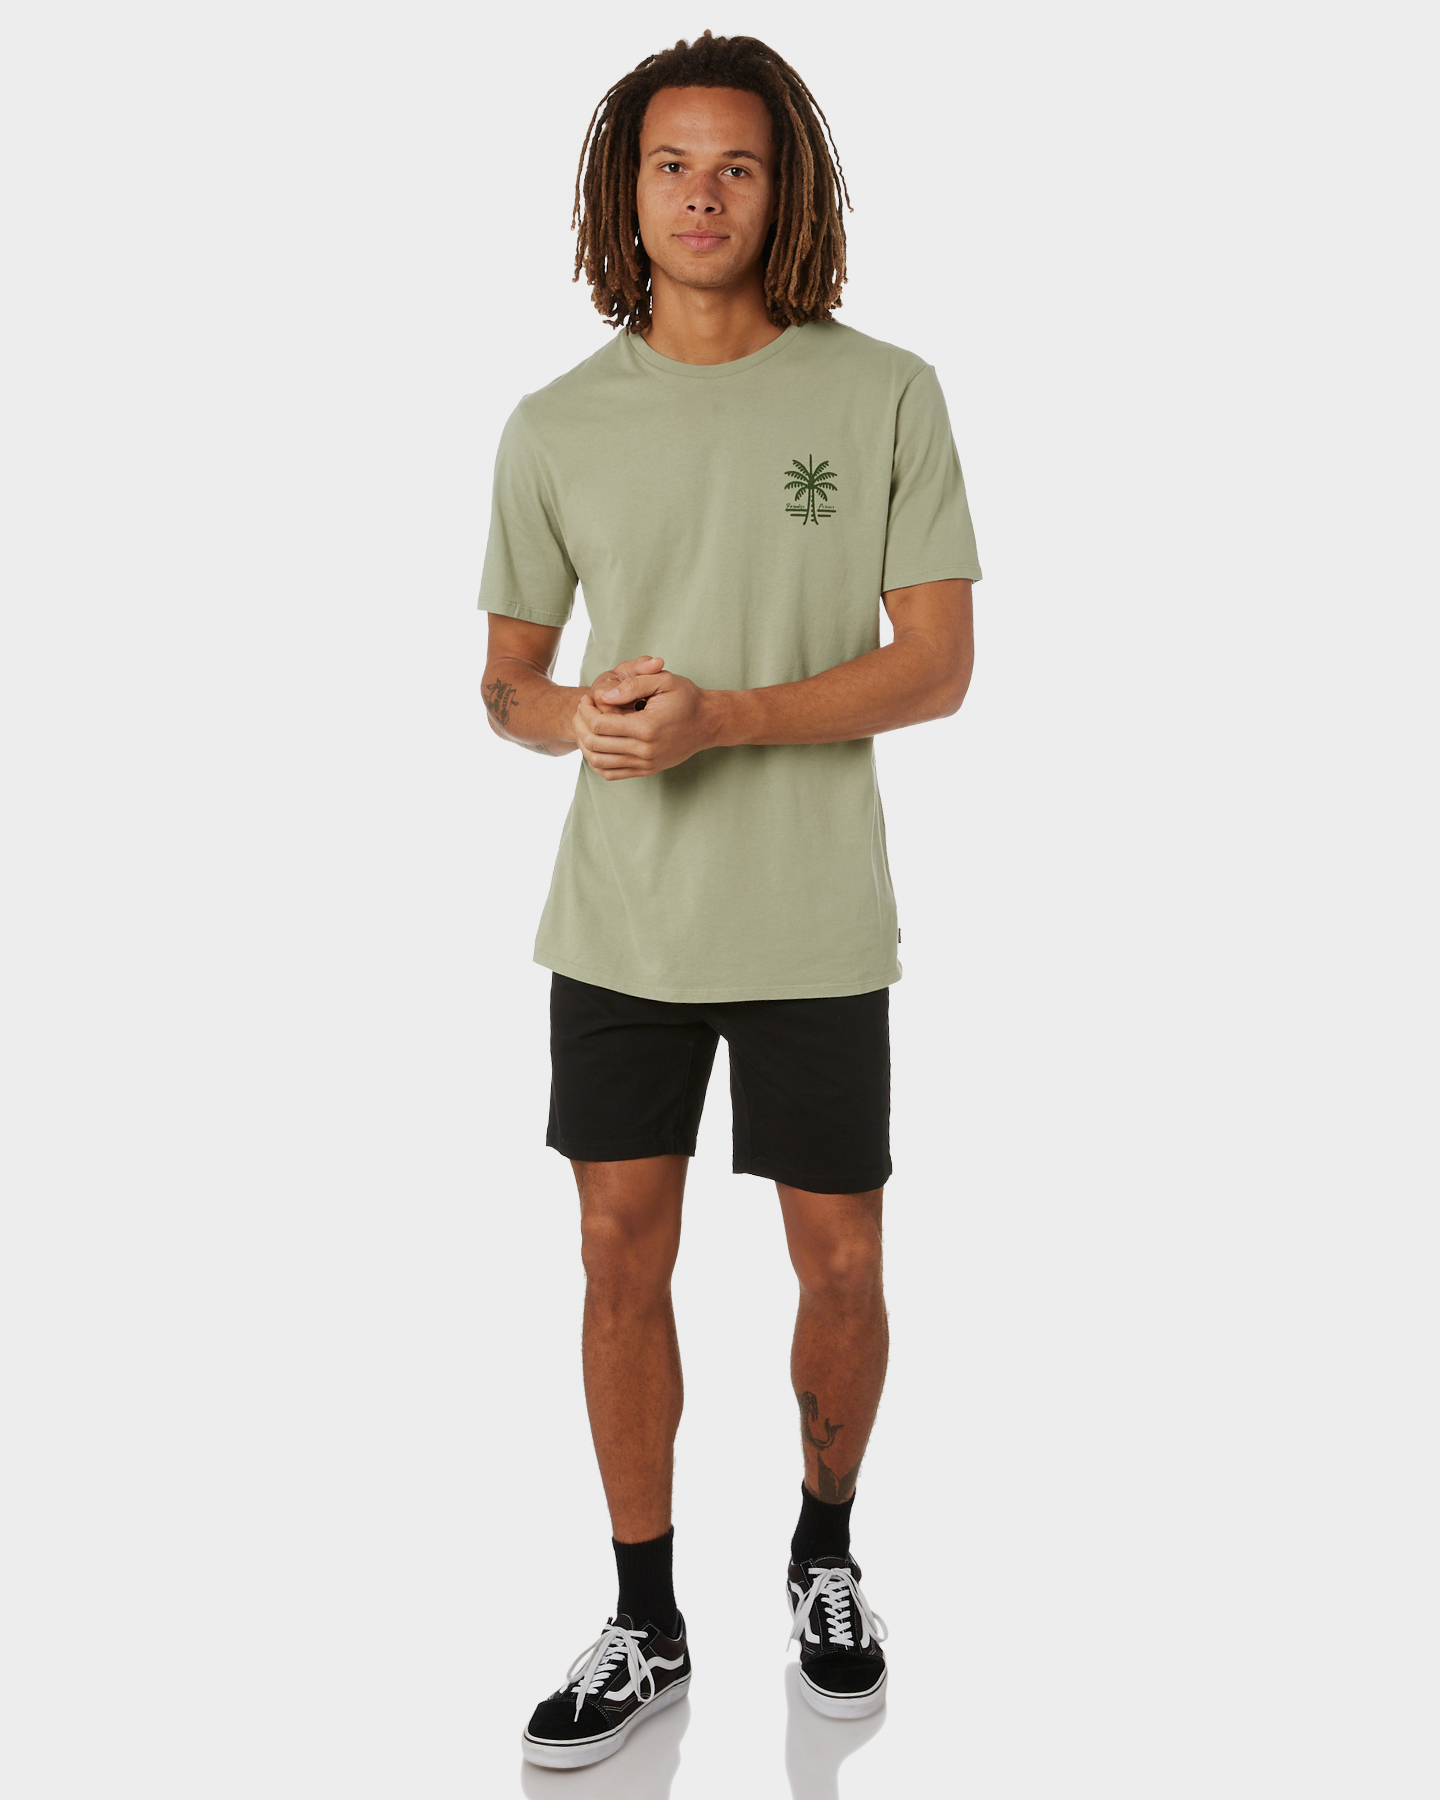 New-Swell-Men-039-s-Dandy-Mens-Chino-Short-Cotton-Fitted-Elastane-Blue thumbnail 10